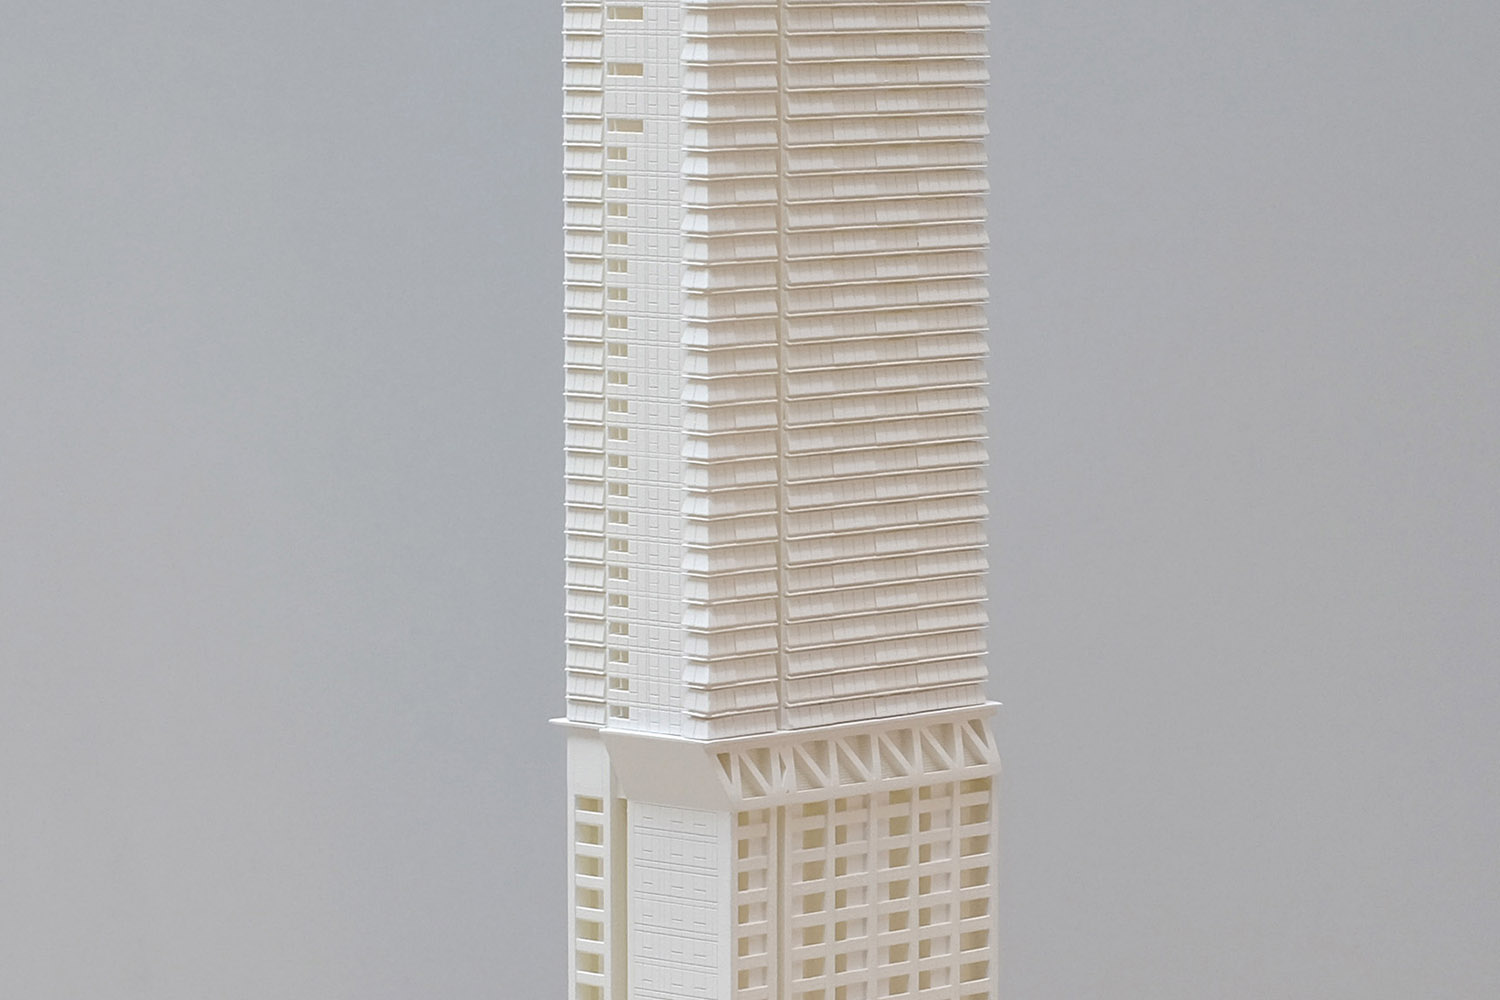 City of Sydney DA model for Greenland Centre (fenestration detail)